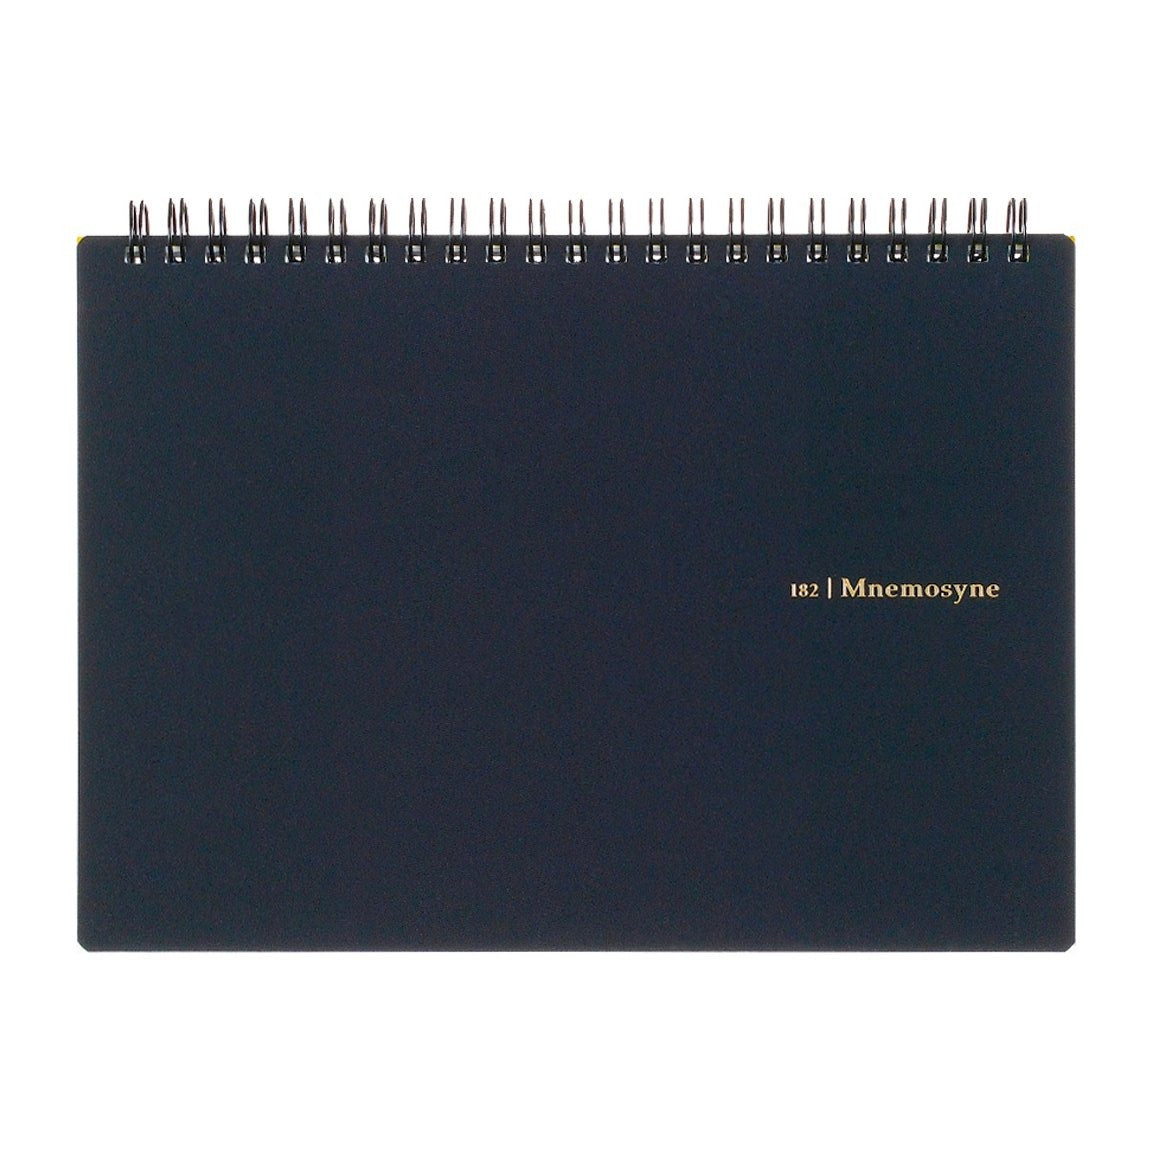 Mnemosyne Grid Notebooks - 11:11 Supply